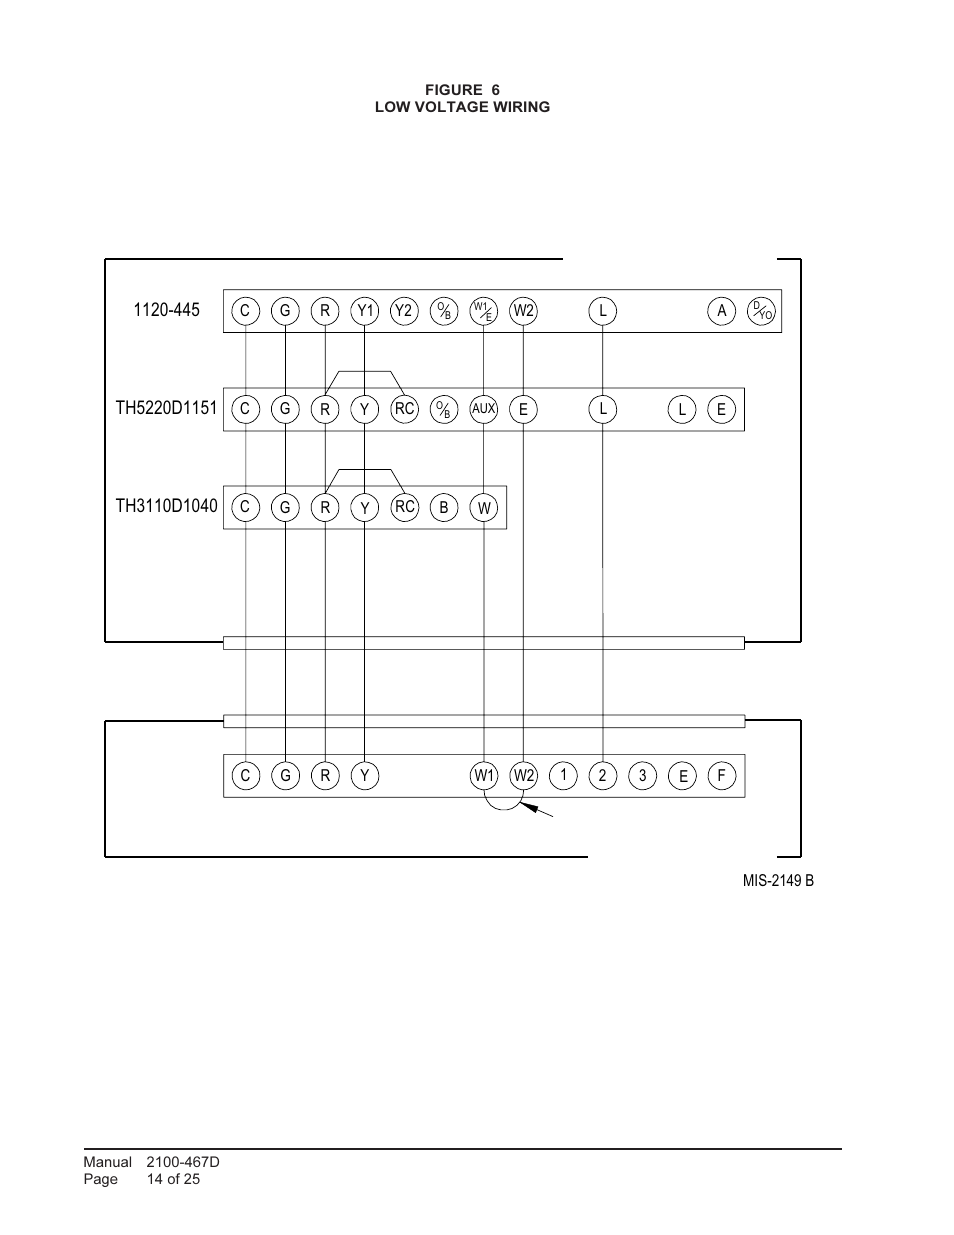 Low Voltage Wiring Unit Control Panel Thermostat Subbase Bard Air Conditioner Diagrams Single Package Conditioners Pa13241 A User Manual Page 14 25